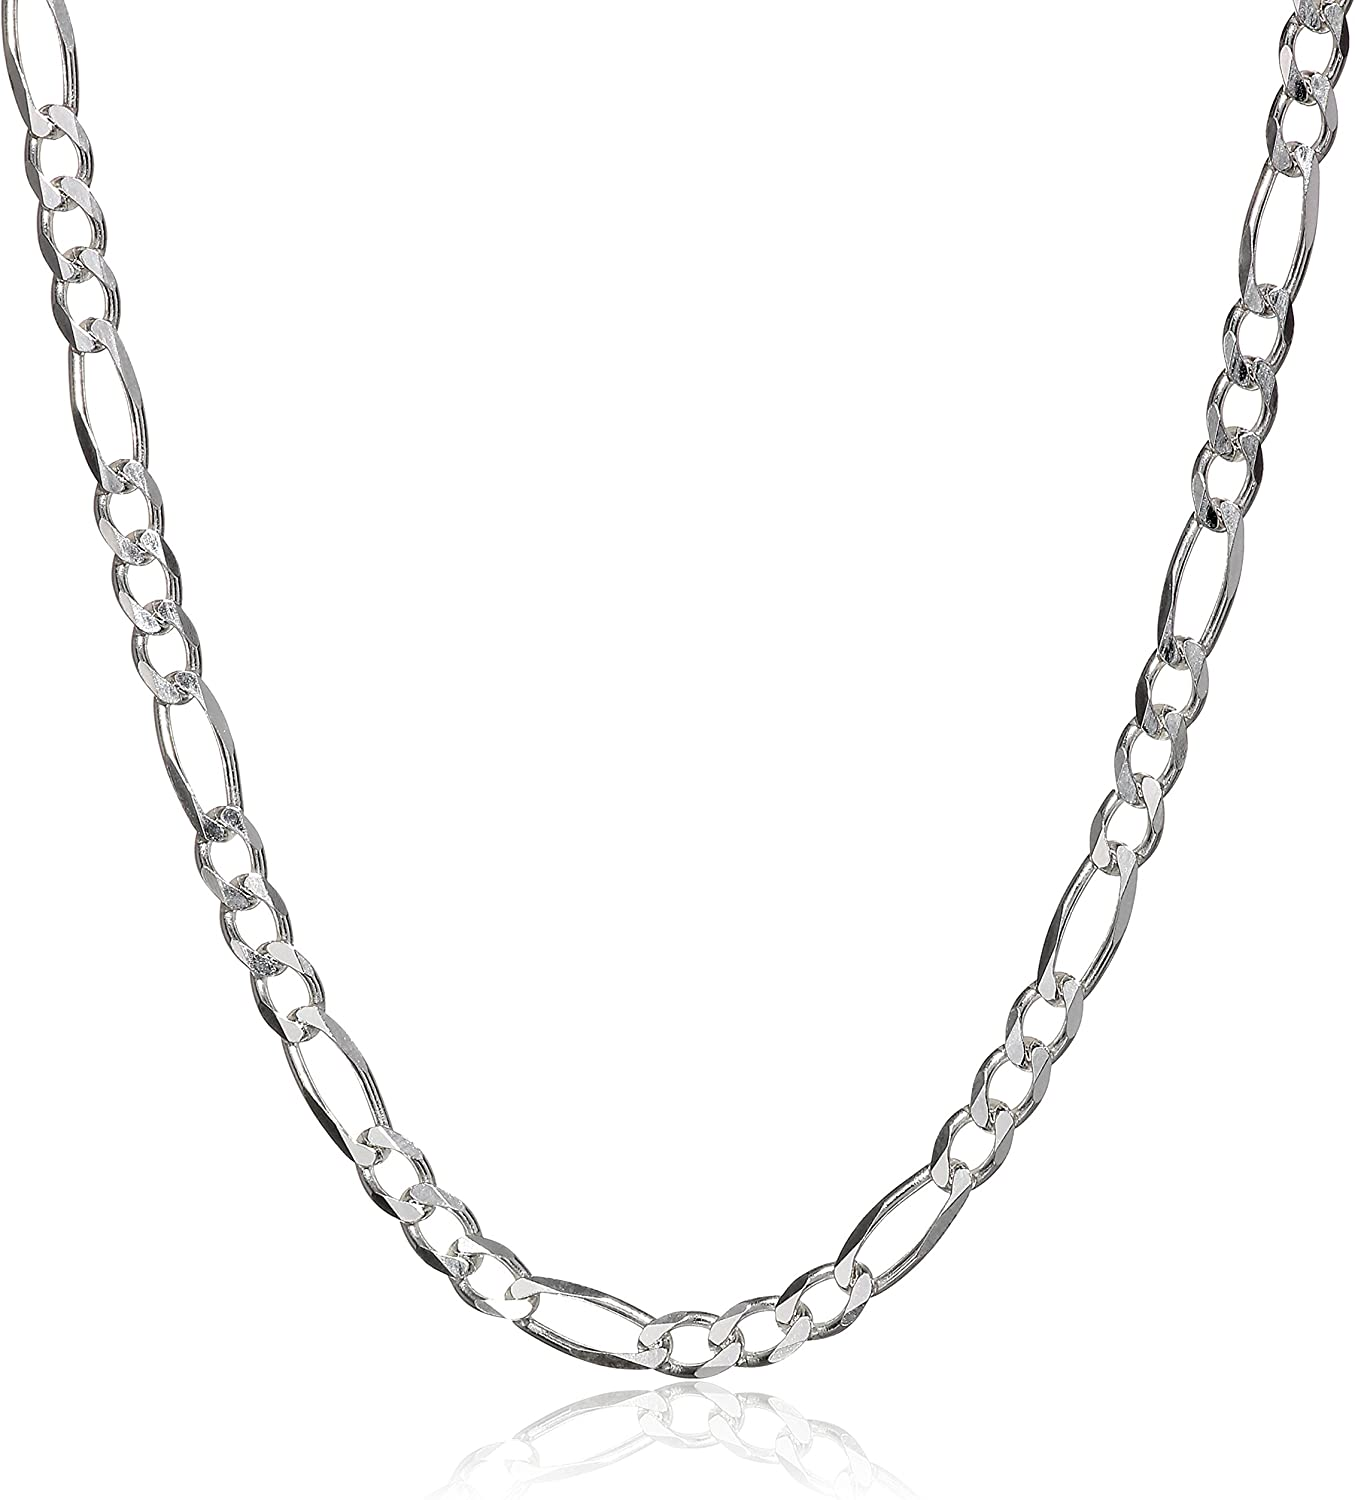 3.2ft1.6ft S925 Sterling Silver Chain,Necklace Chain,Sterling Silver Chains,Silver Chain